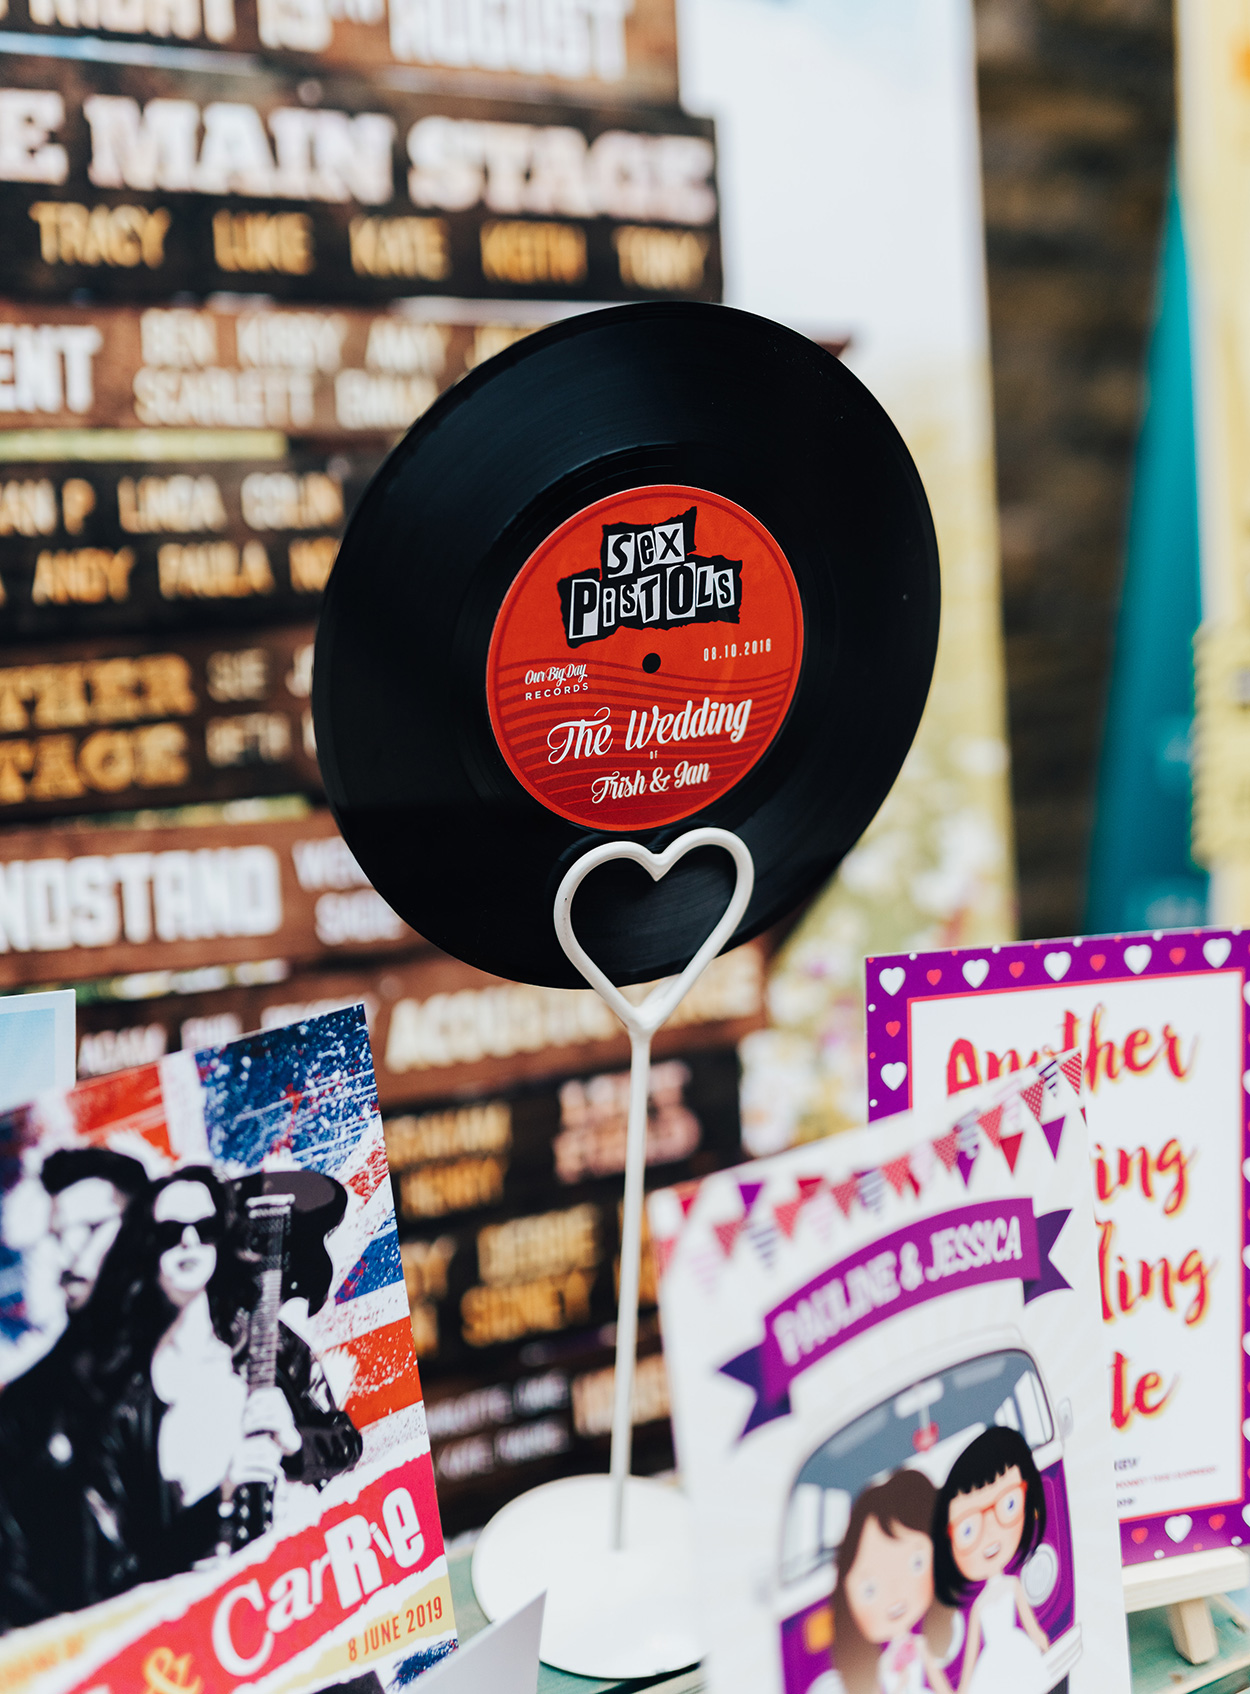 custom vinyl records for weddings